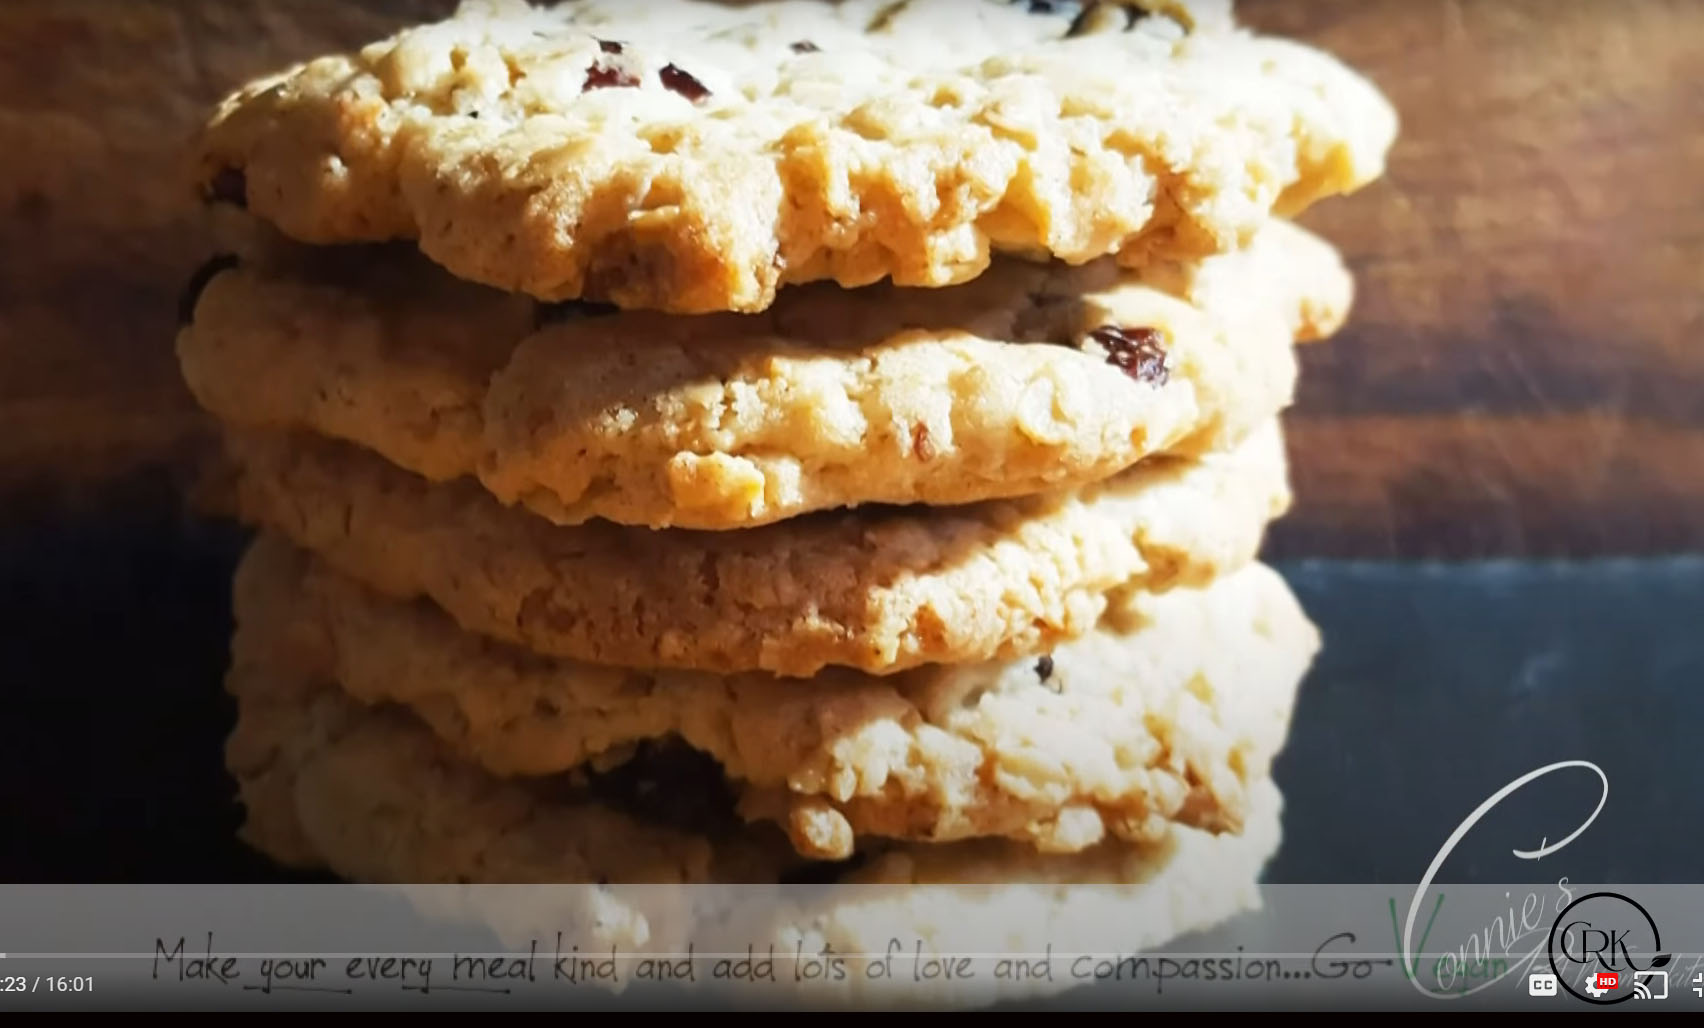 Connies' Best Vegan Rasin and Oatmeal cookie recipe